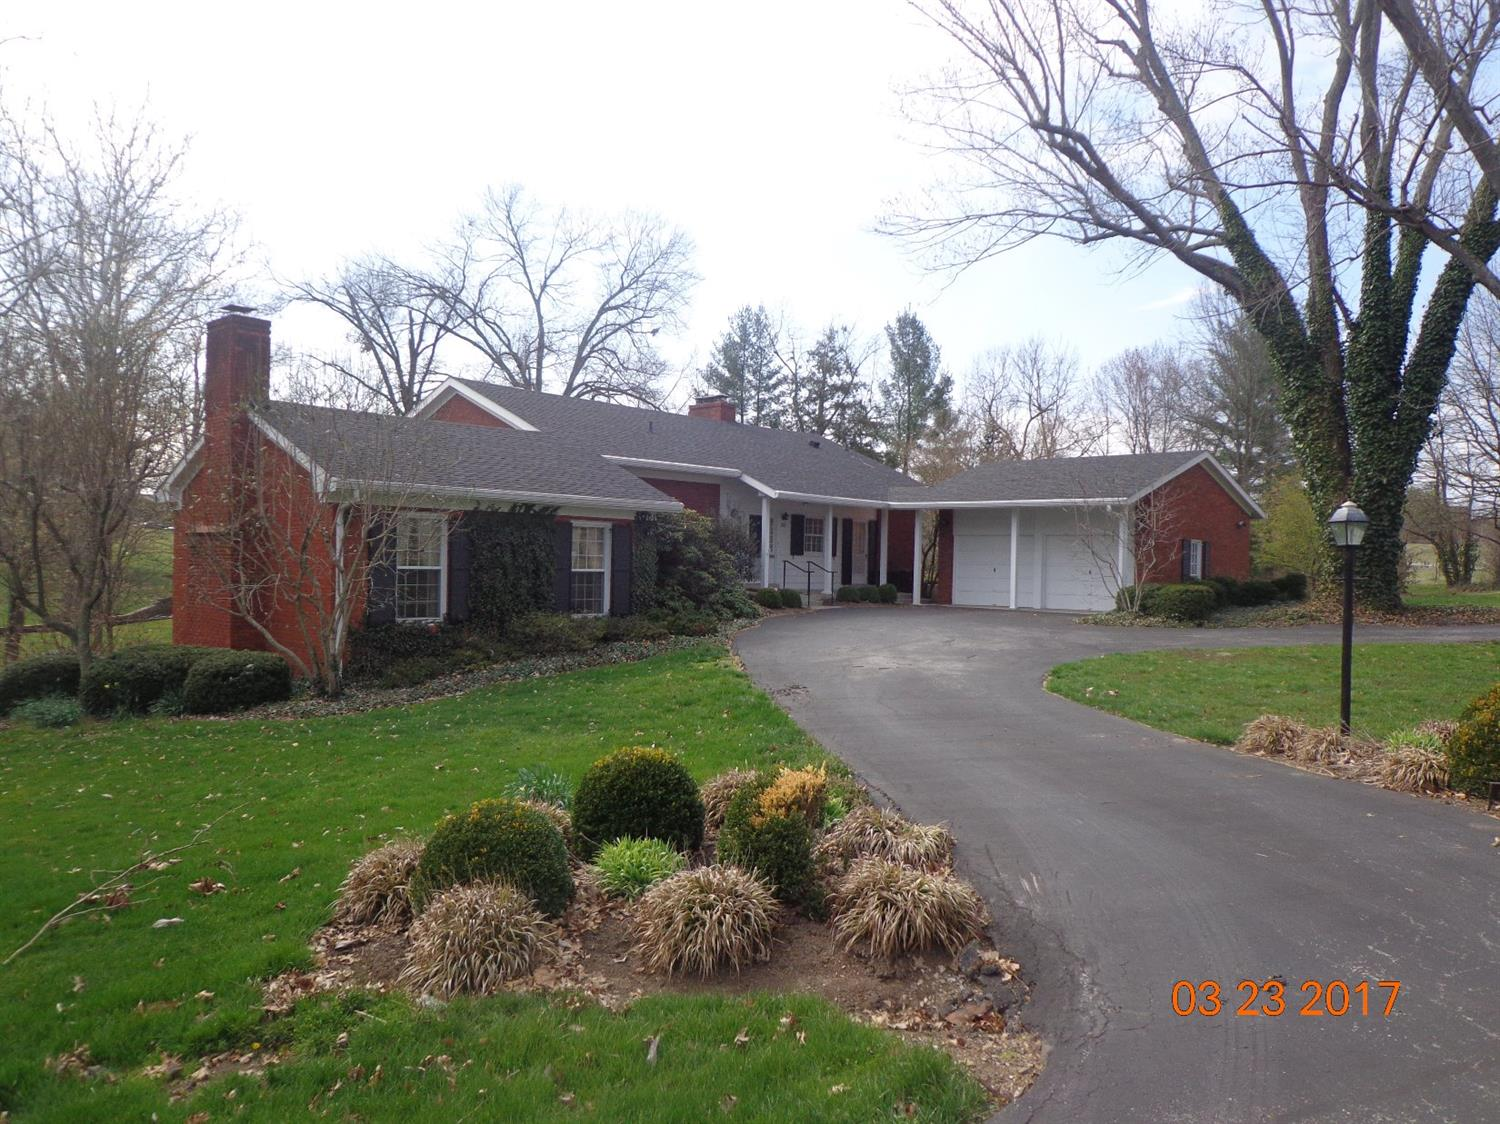 Great%20one%20owner%20home%20in%20Bon%20Air%20Hills%20off%20Country%20Lane%20on%20beautiful%20lot!%20This%20all%20brick%20home%20features%203%20bedrooms,%202%20full%20baths,%20living%20room,%20dining%20room,%20walkout%20basement,3%20fireplace,%202%20car%20attached%20garage,%20and%20large%202%20story%20porch%20overlooking%20back%20yard!